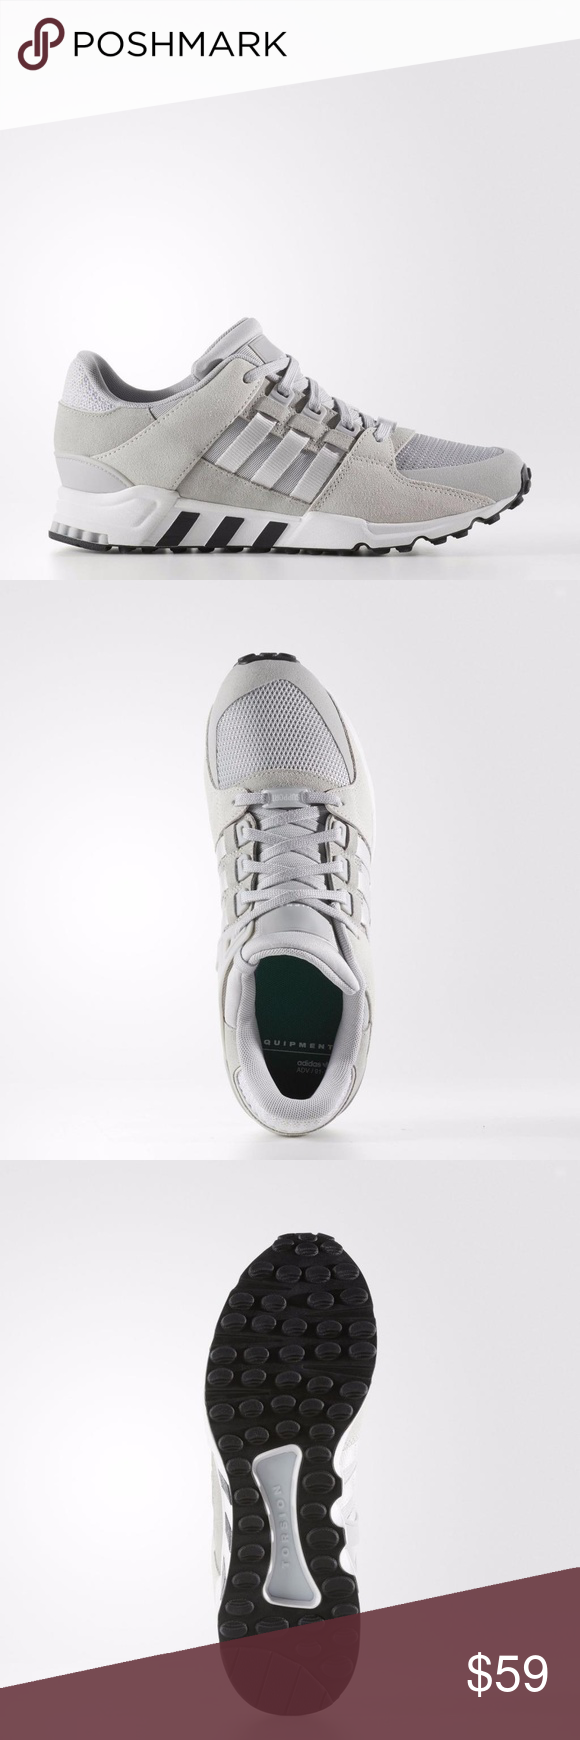 dcf66dcf3fd NEW ADIDAS EQT SUPPORT RF SHOE LIGHT MEN S 13 - Archive-inspired mesh upper  with